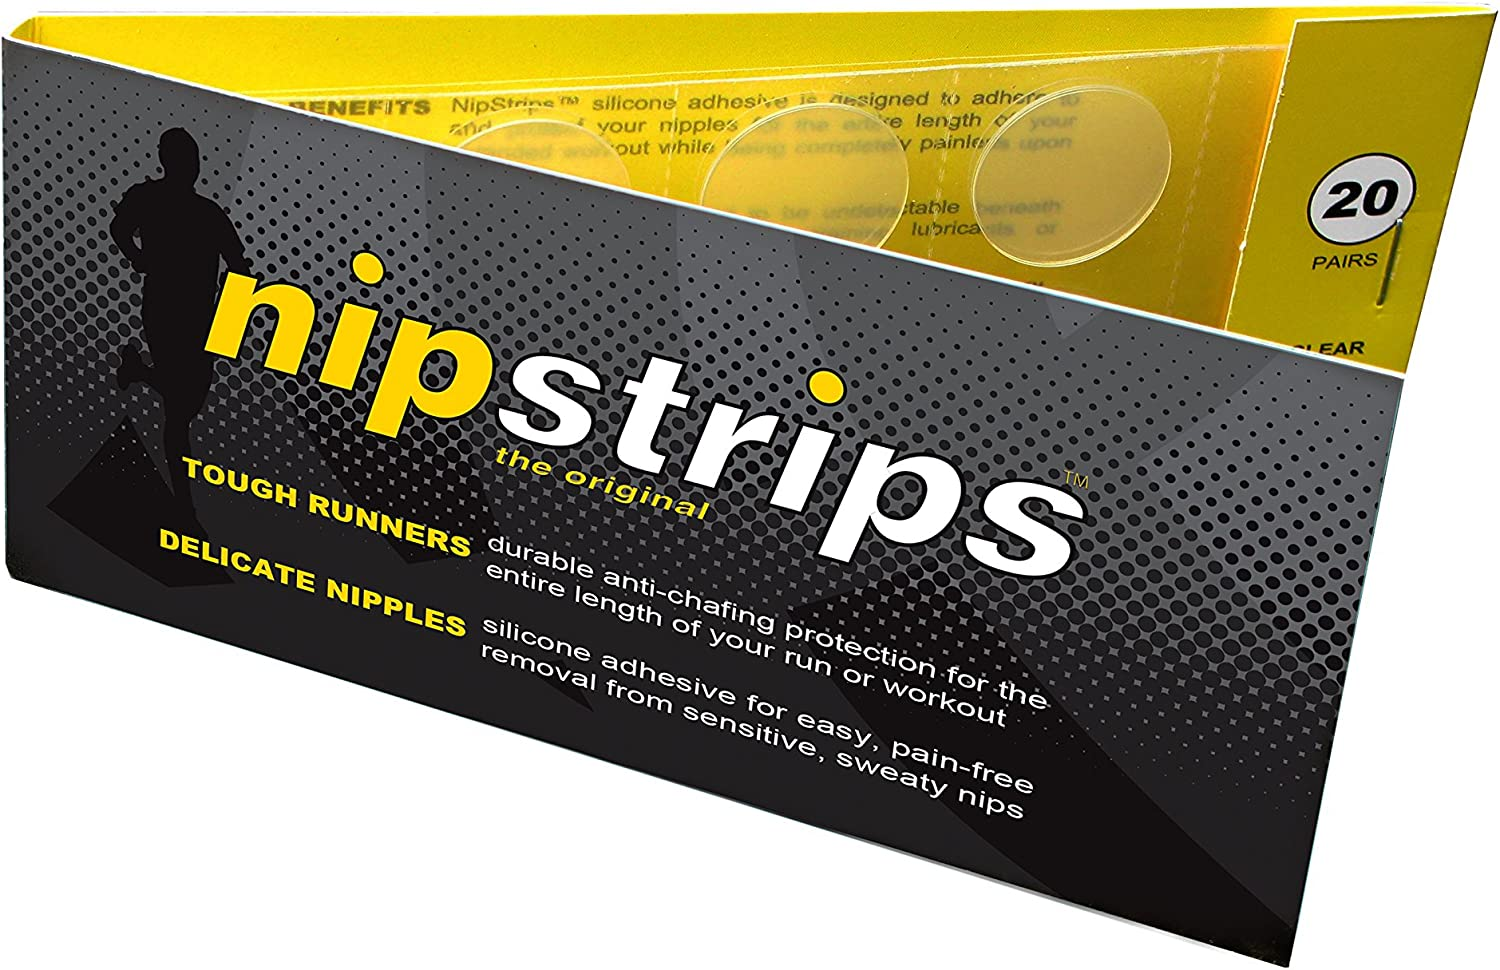 NipStrips Best Nipple Chafing Solution for Long Distance Runners, Clear Adhesives That are Discreet & Painless, Guaranteed to Go The Distance on Training & Race Day, Nip Guard Remedy - 20 Pairs